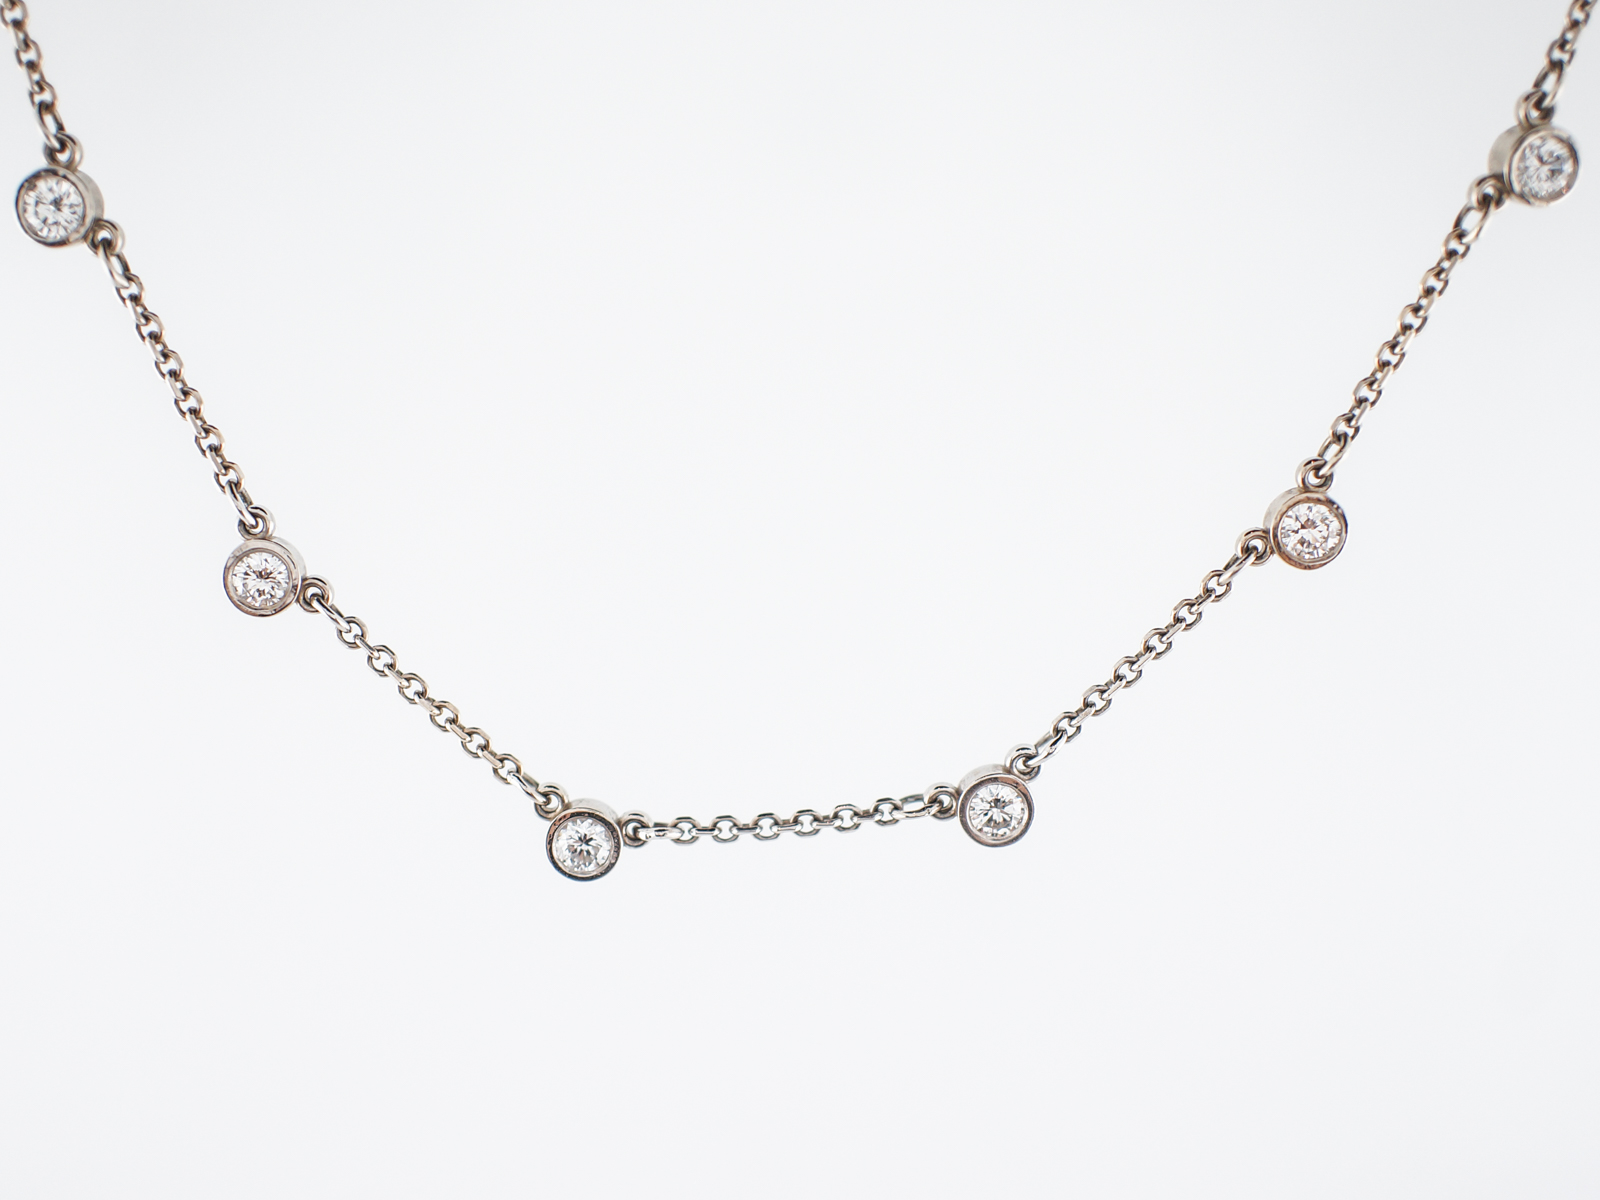 Modern Necklace 1.90 Round Brilliant Cut Diamonds in 14k White Gold-2